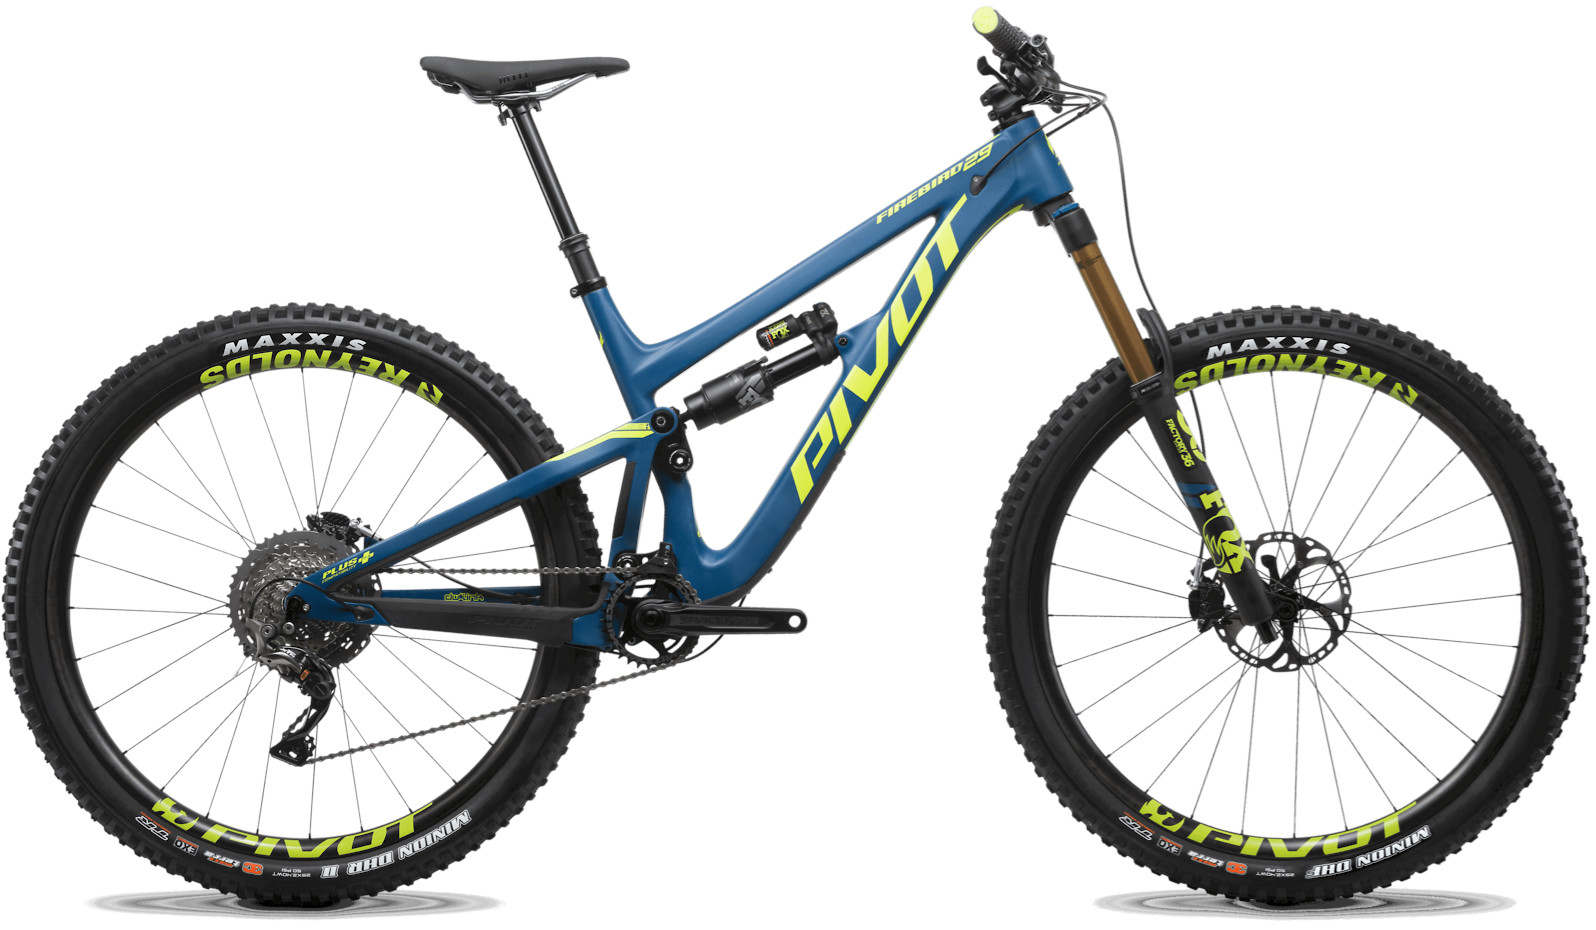 2020 Pivot Firebird 29 Steel Blue (Pro XT XTR 12 Speed build pictured)